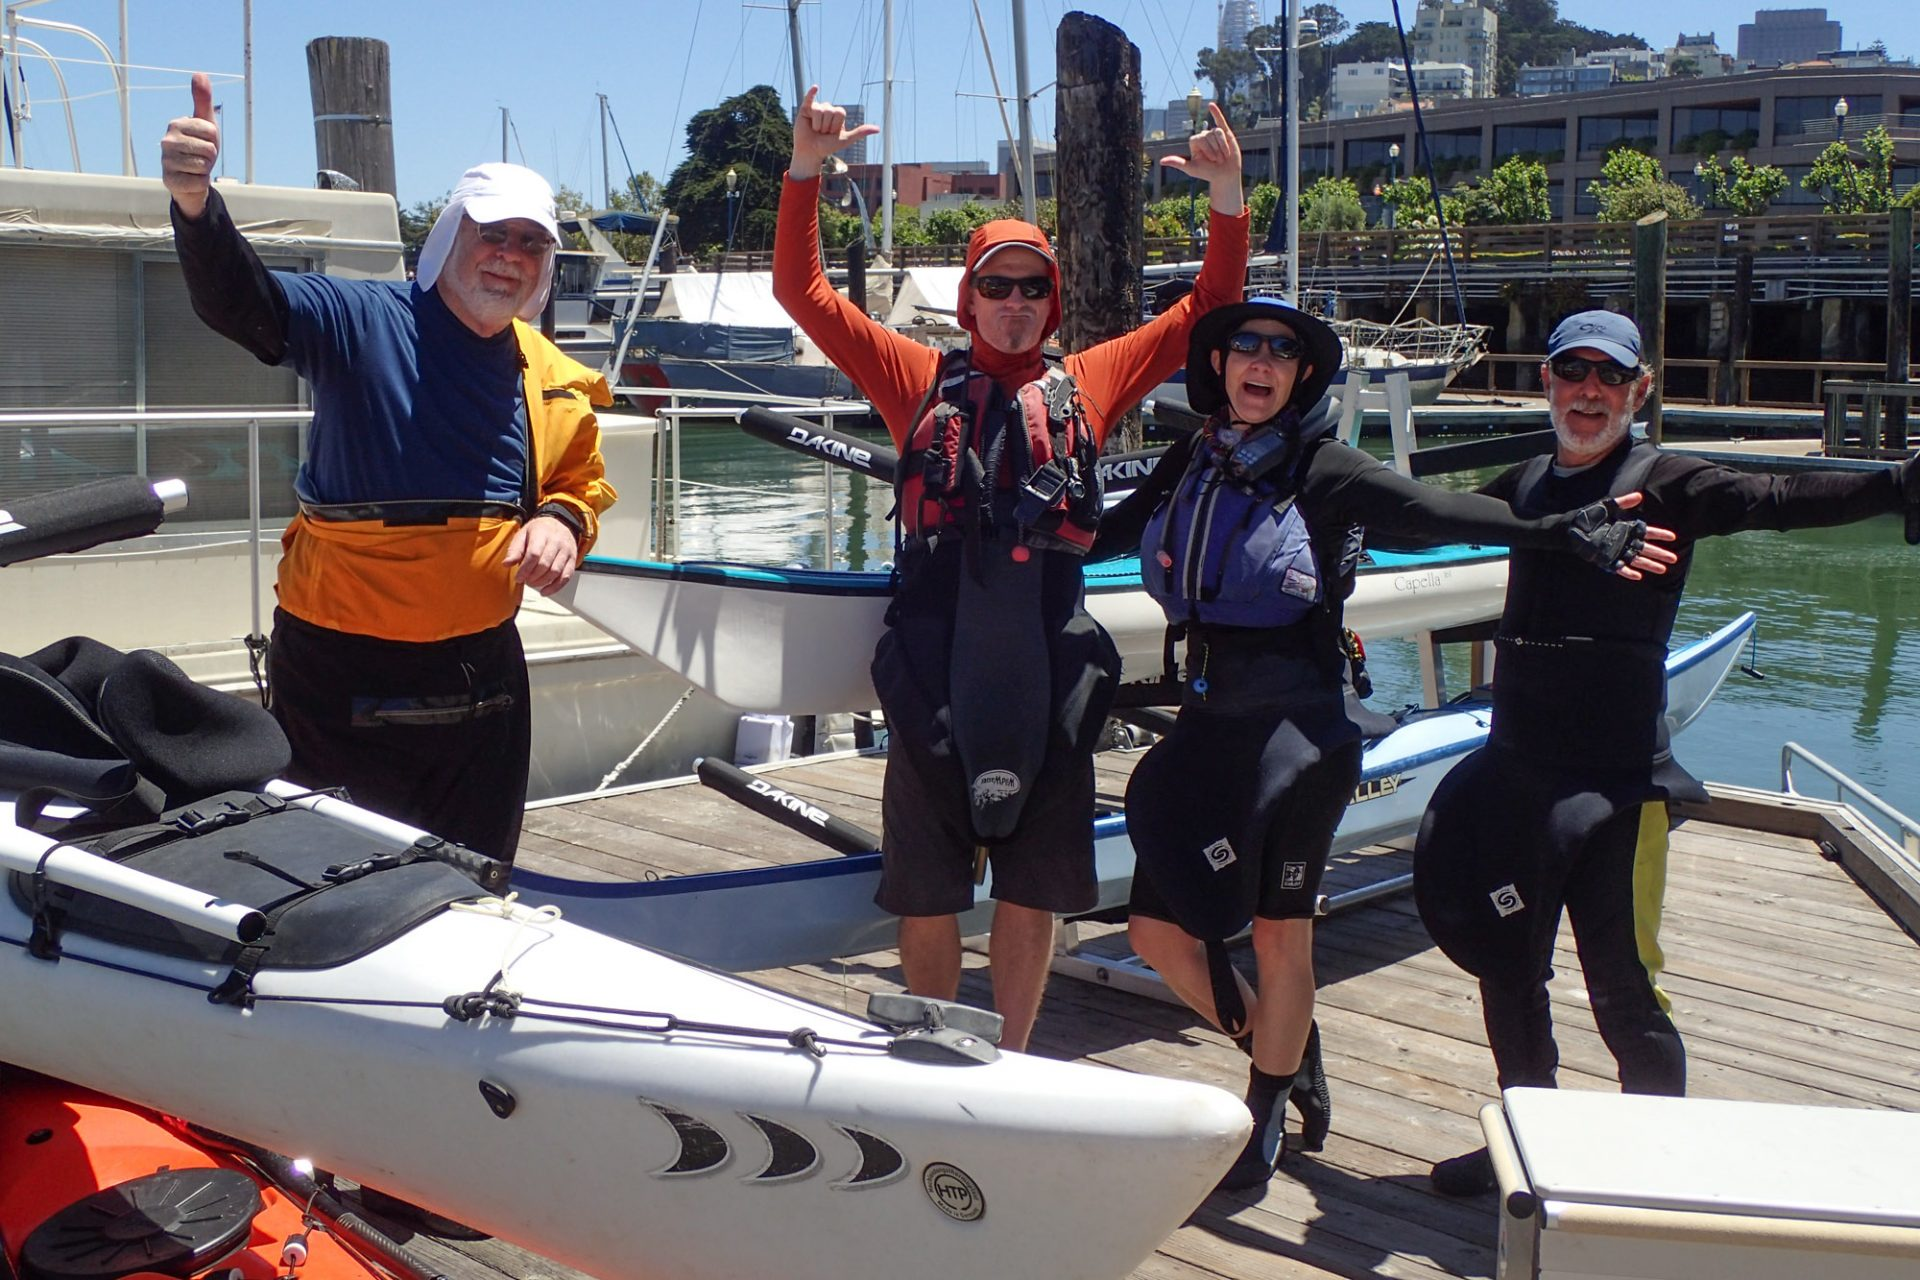 Four people in paddling clothes standing up dock holding their arms out and smiling, surrounded by kayaks